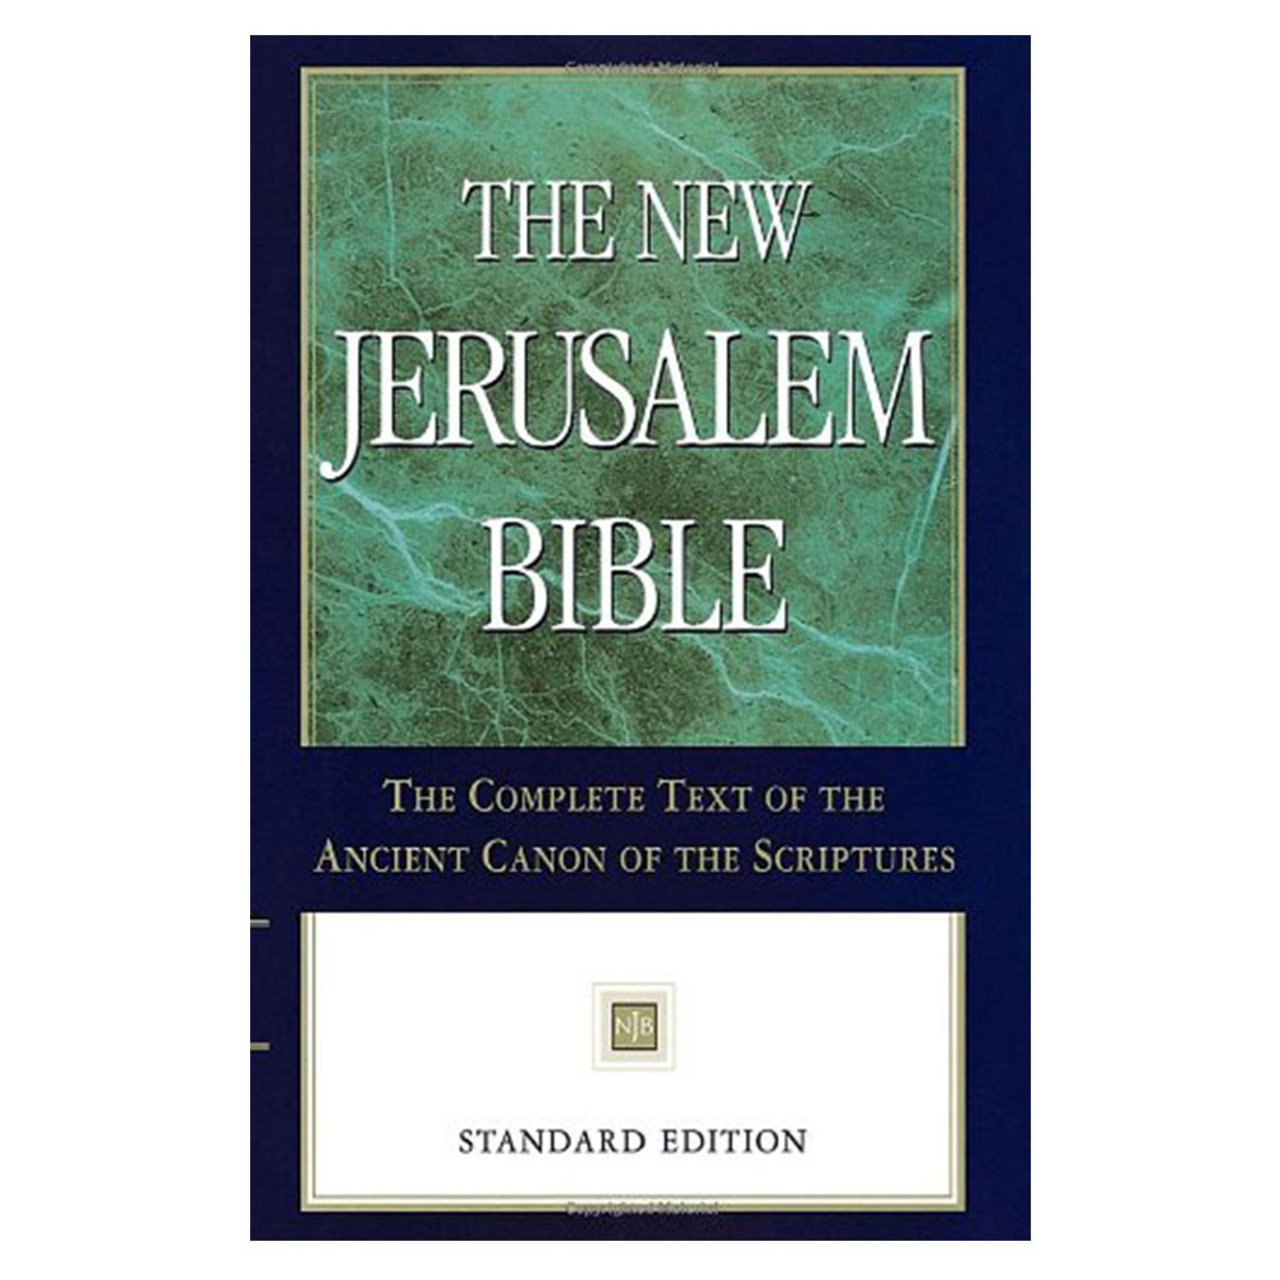 NJB Bible Standard Edition Hardcover